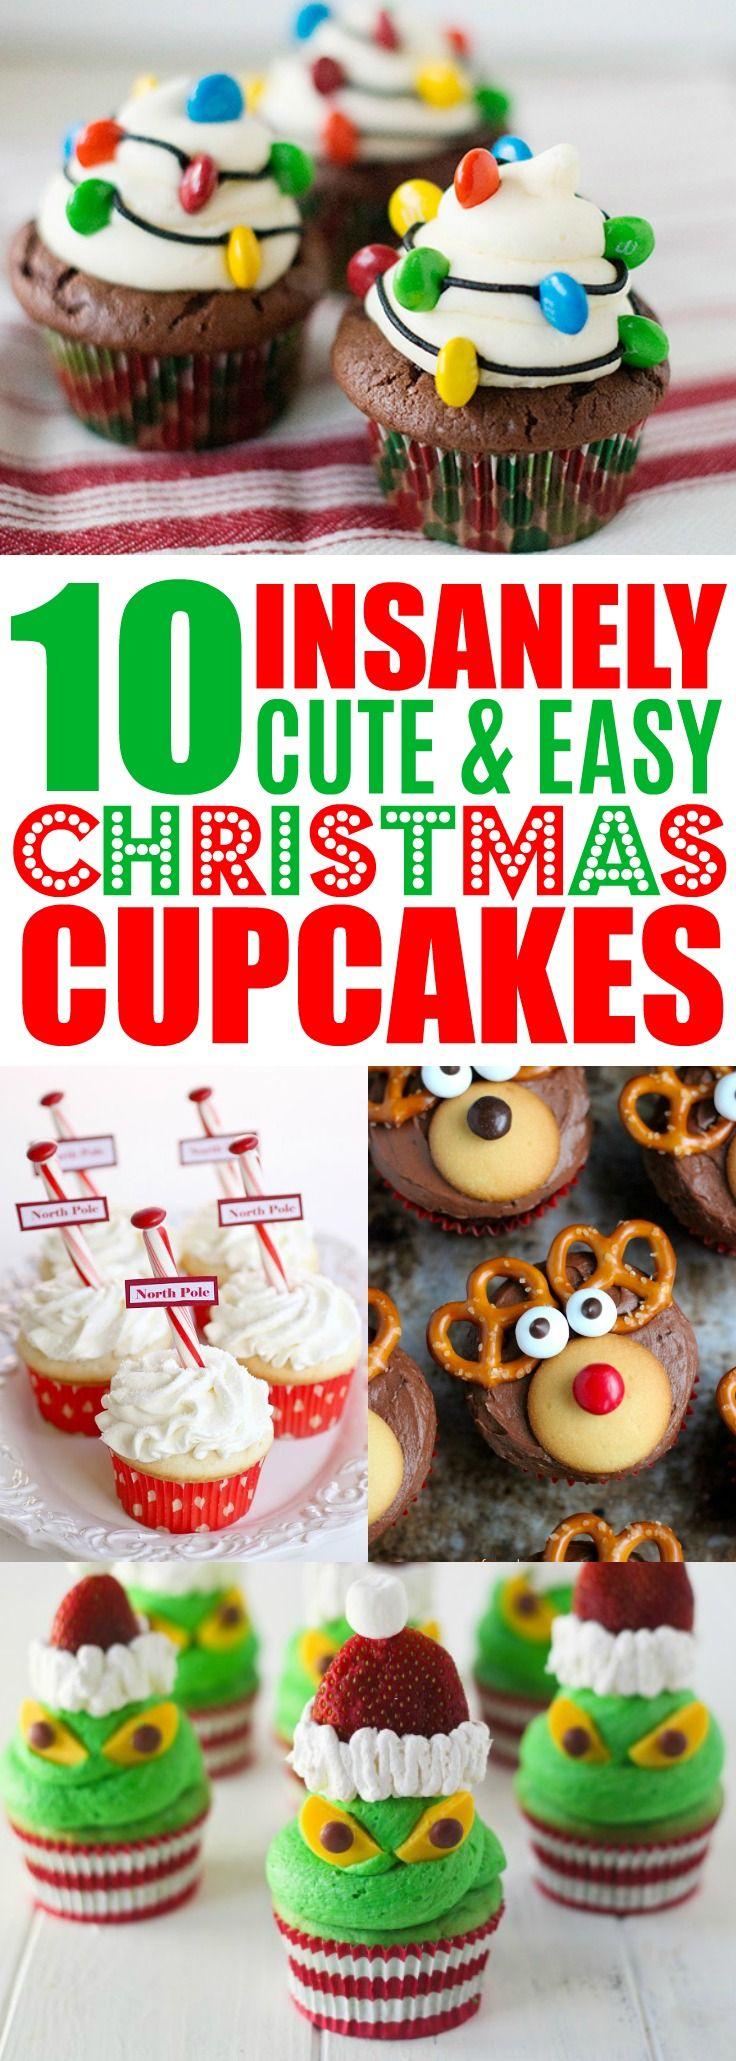 Easy Christmas Cupcake Recipes, Holiday Cupcake Ideas, Decorating Christmas Cupcakes For Kids